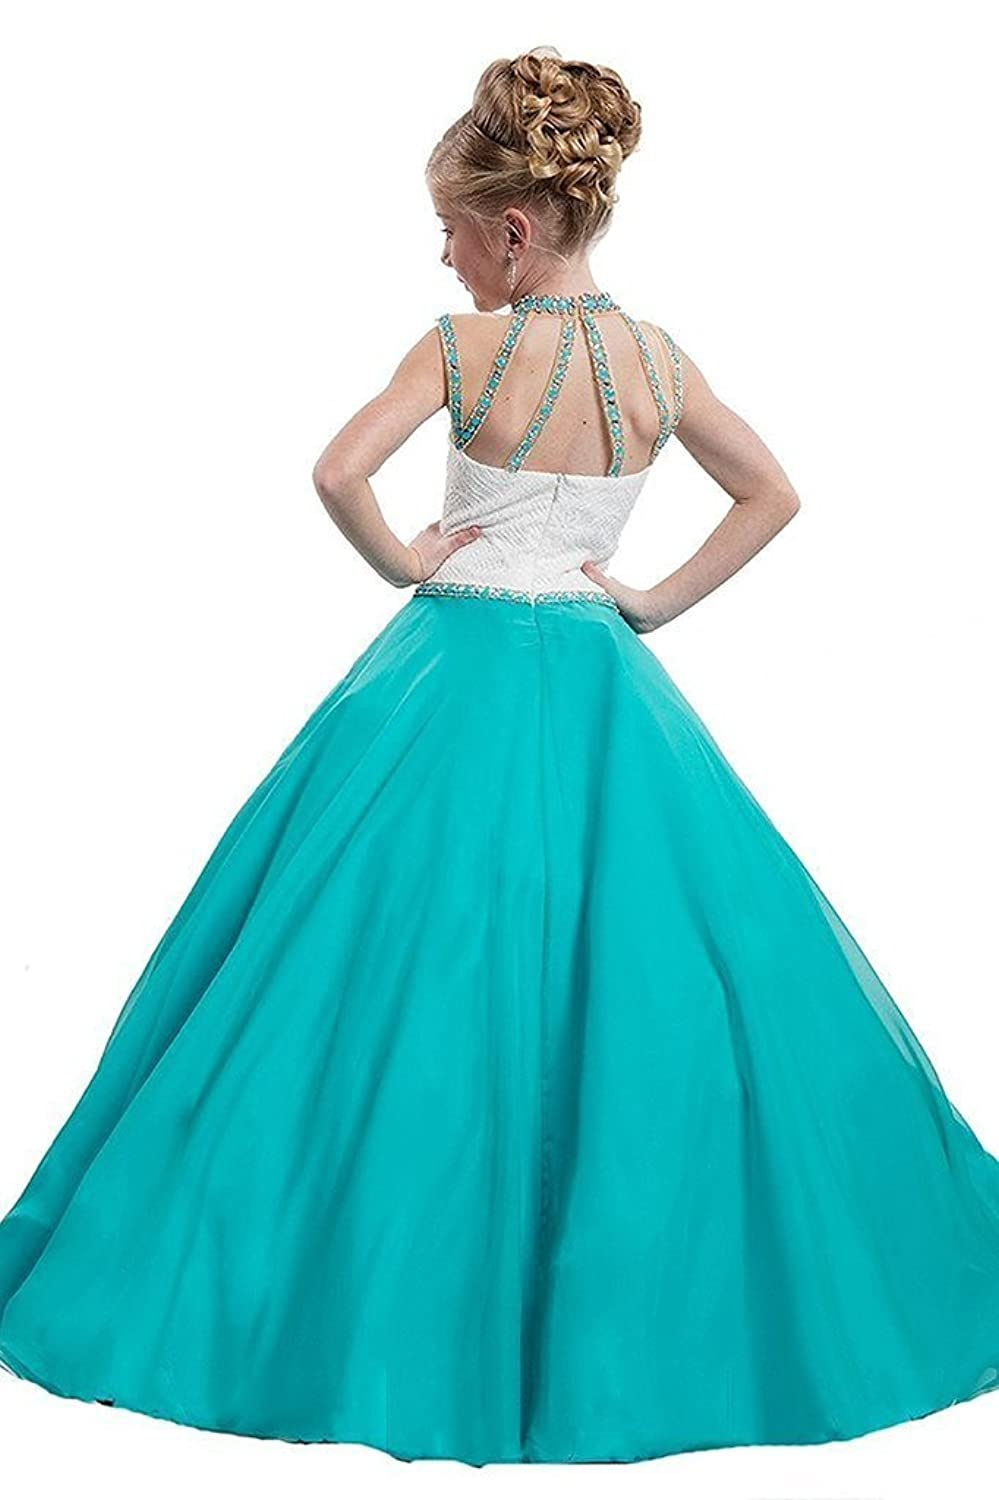 Amazon.com: WZY Girls Illusion Neckline Pageant Gown Kids Party Ball ...